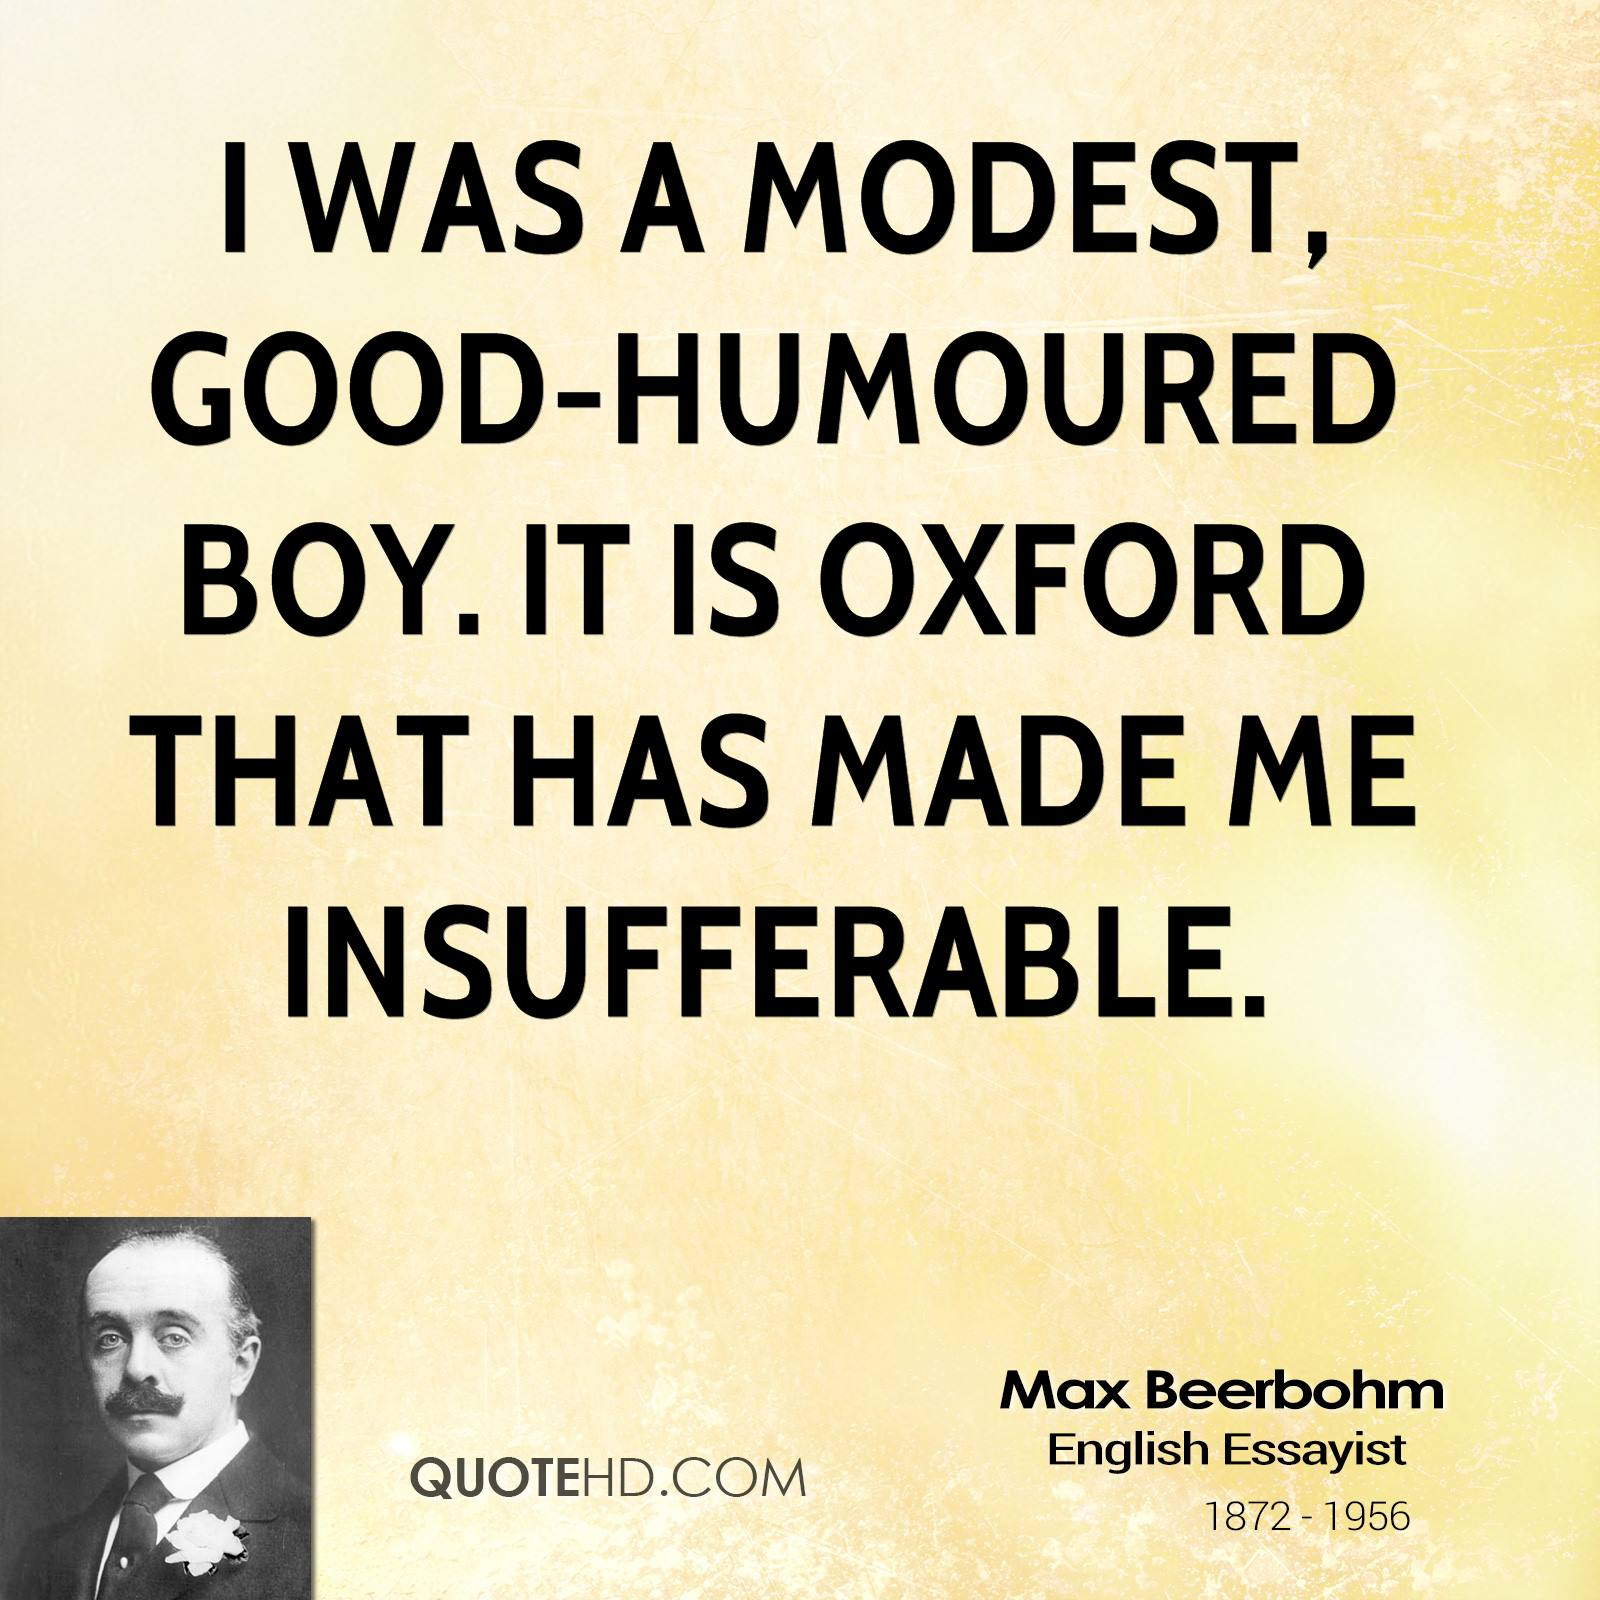 I was a modest, good-humoured boy. It is Oxford that has made me insufferable.